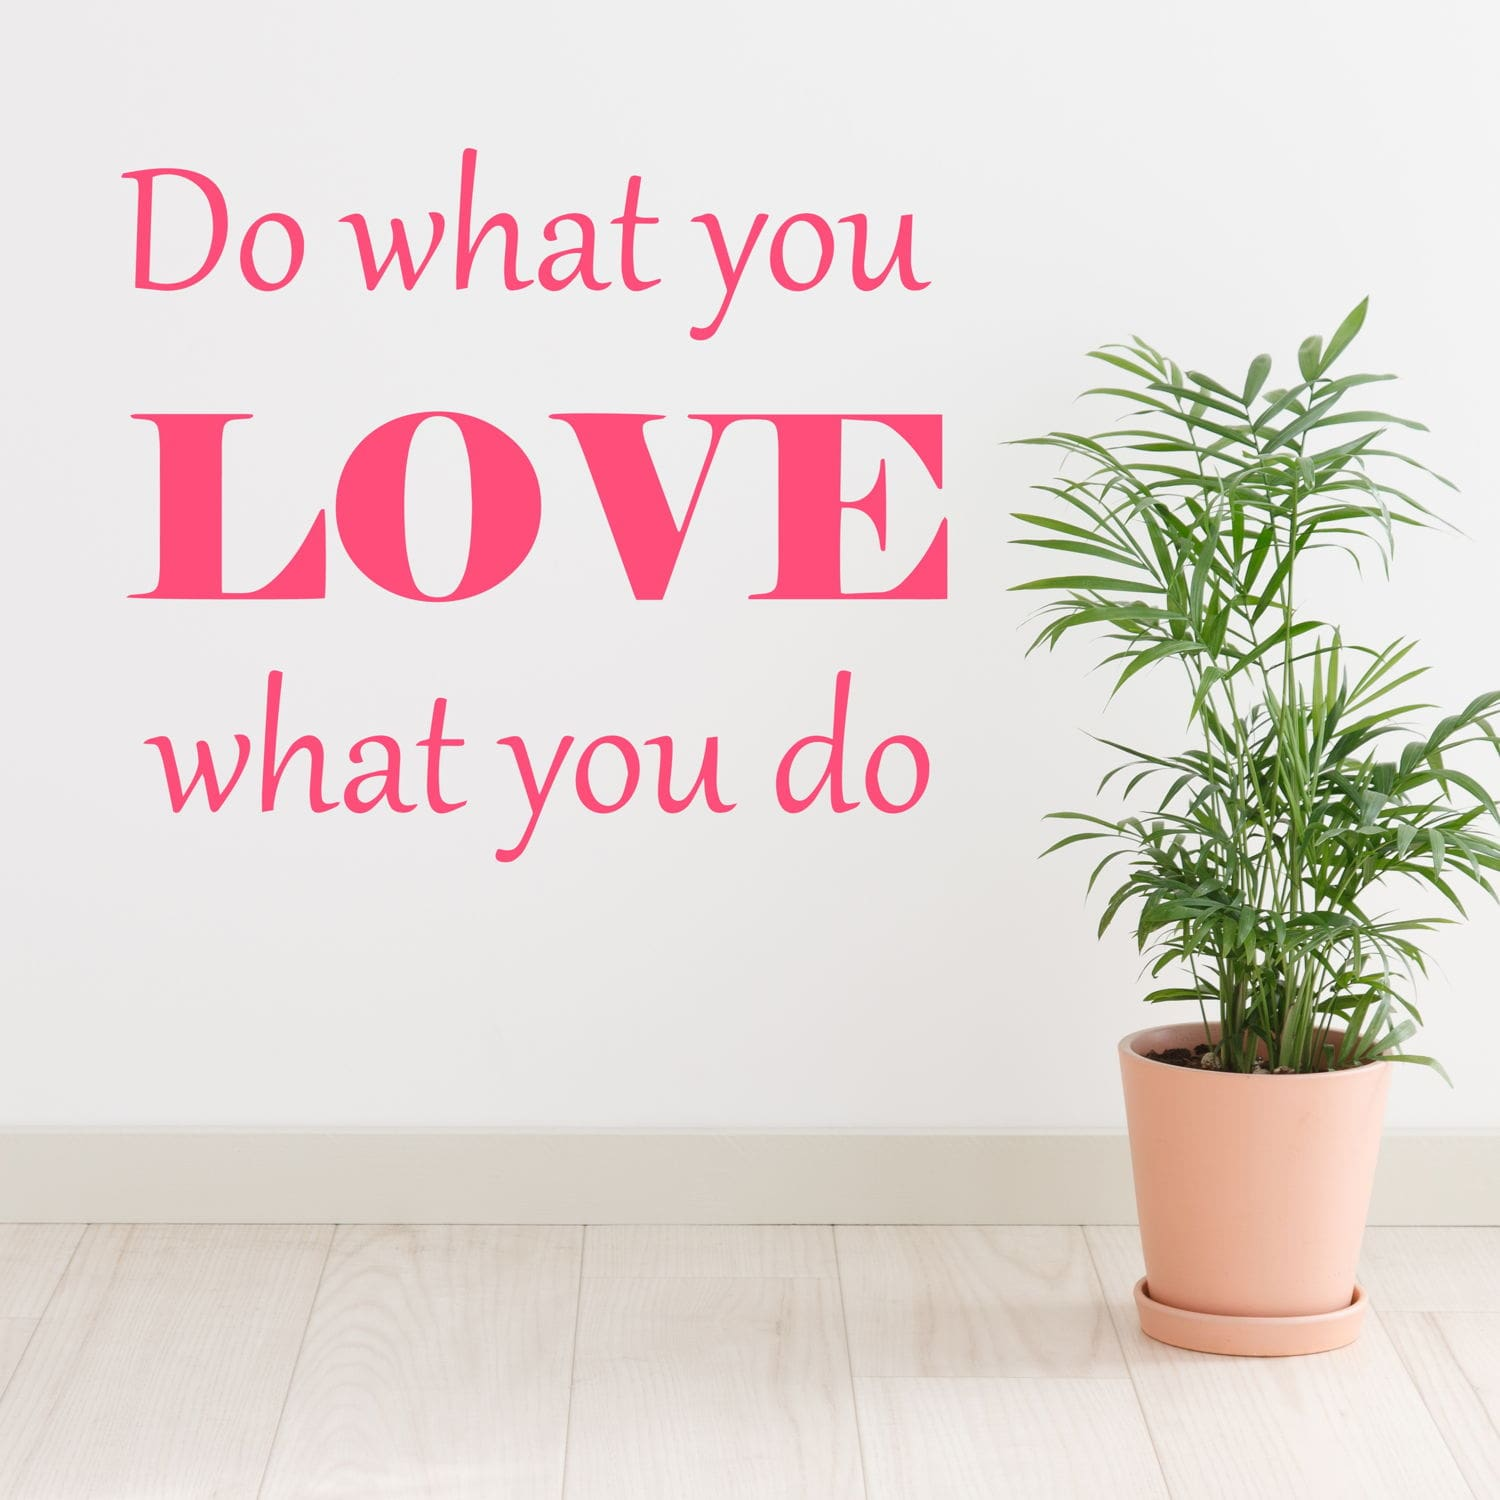 Wallsticker Do what you Love